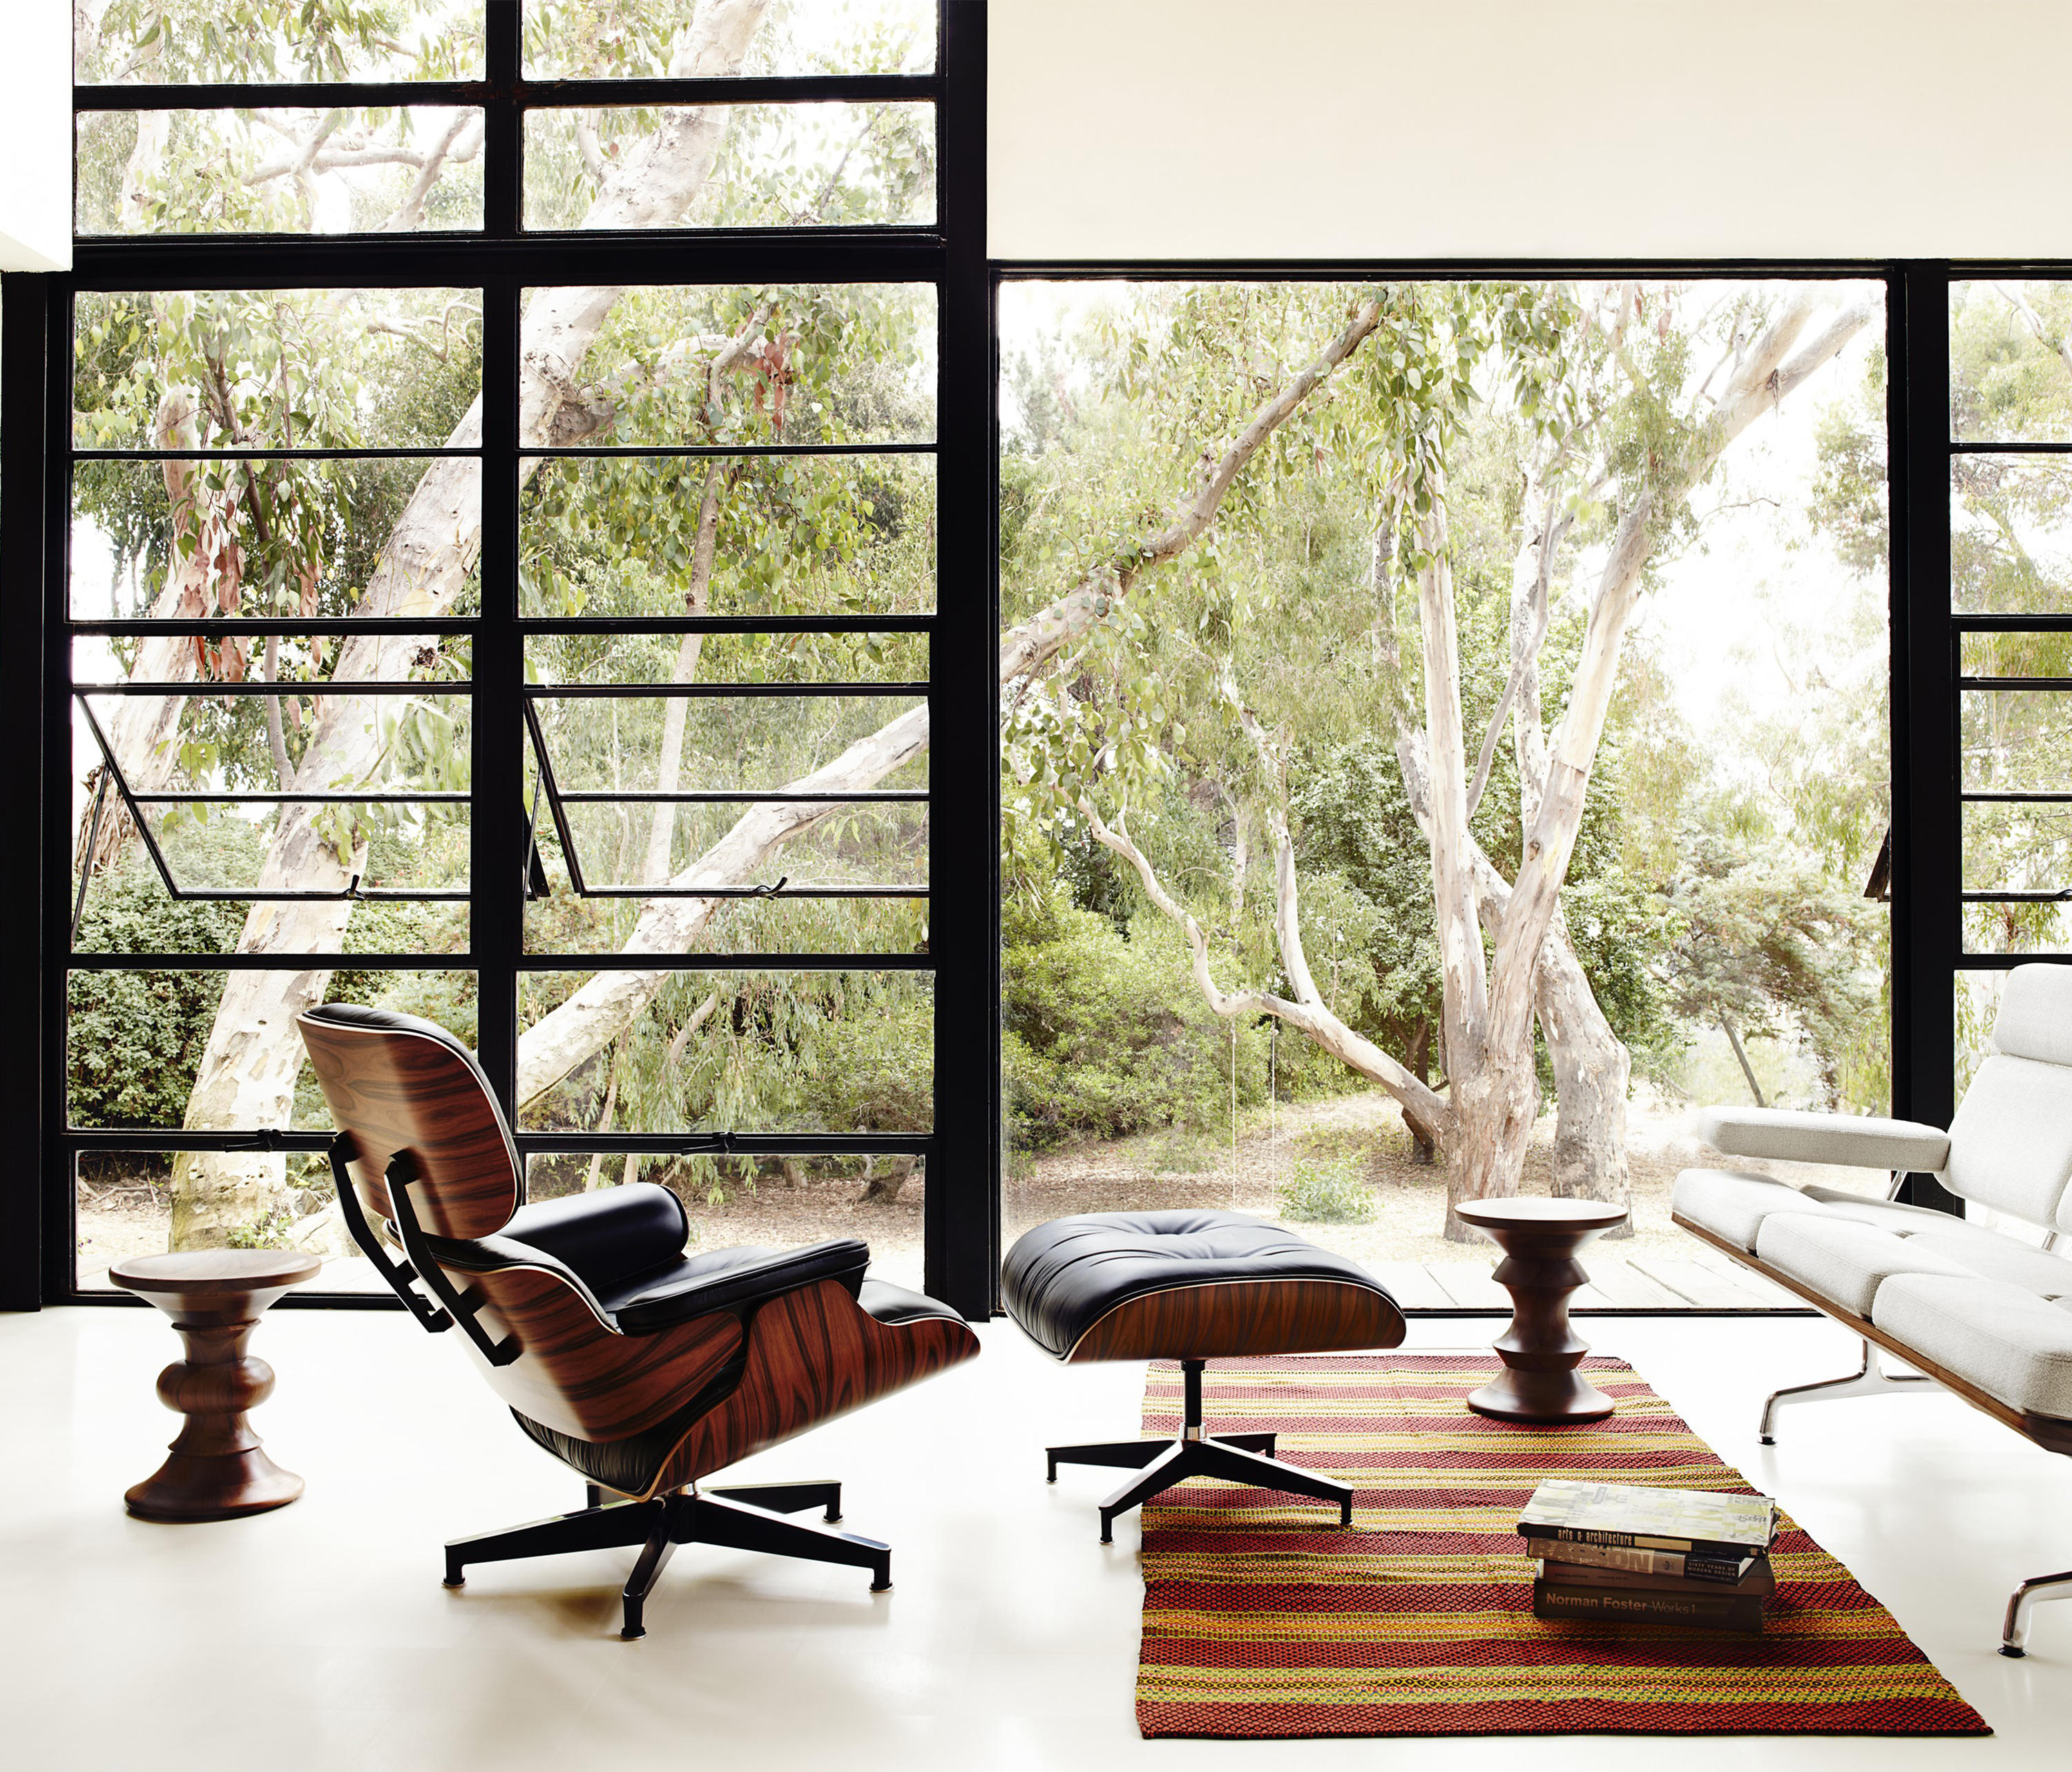 Family room herman miller eames chairs - Eames Lounge Chair And Ottoman By Herman Miller